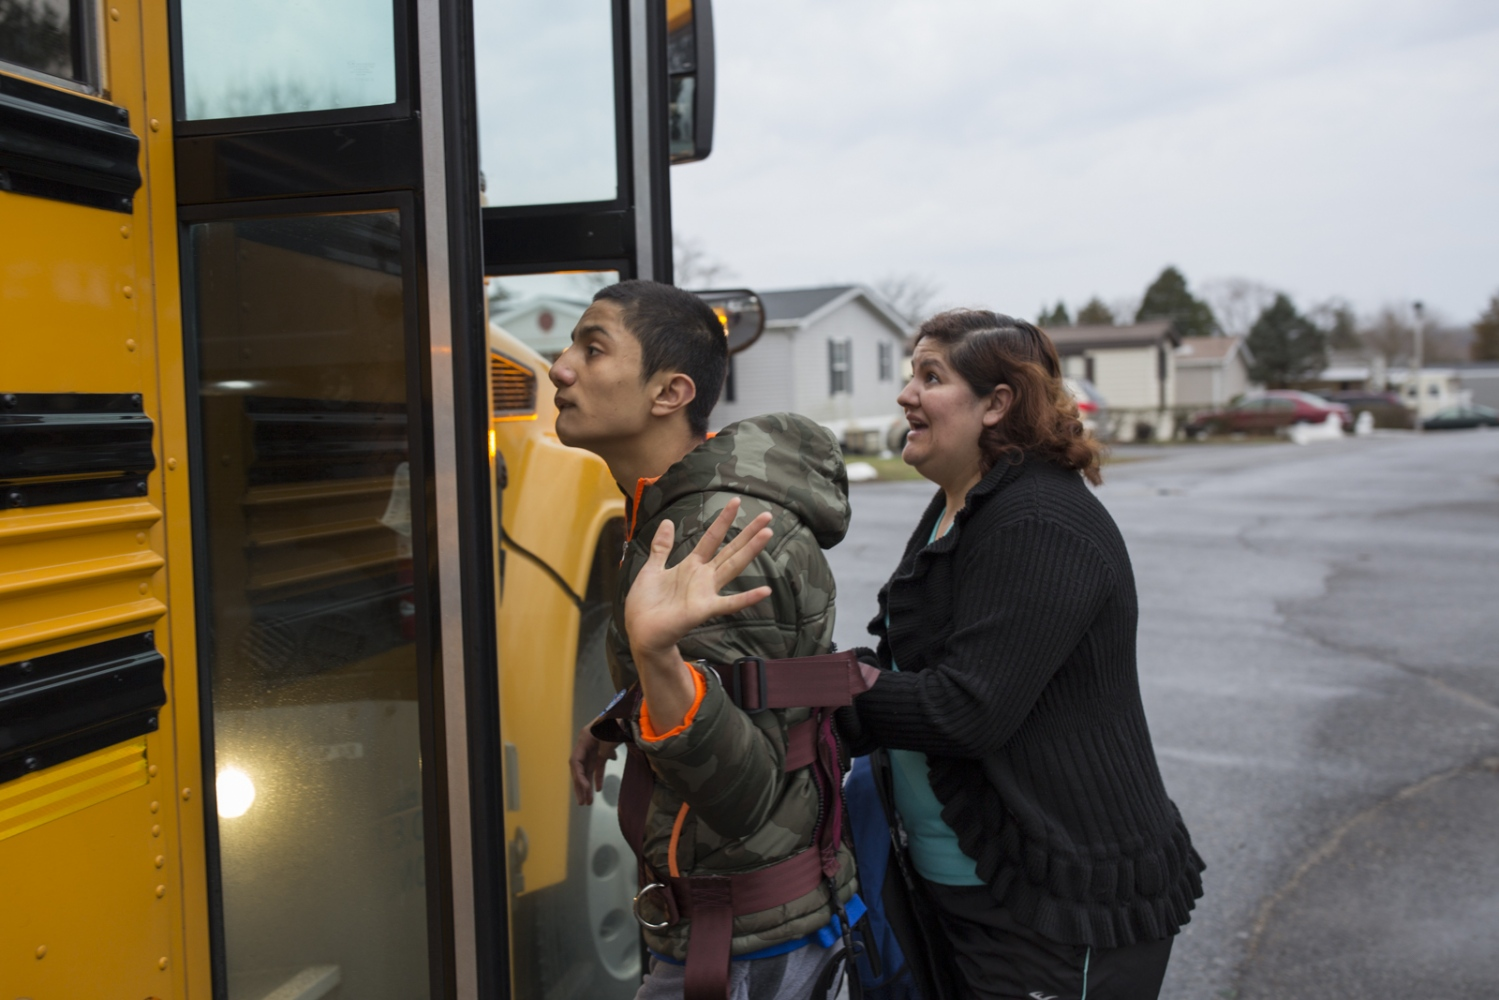 Veronica Castro helps her son Juan Pablo get in the school bus. Juan Pablo has brain damage resulting from complications during a heart surgery when he was three years old, has problems controlling his movements and has to use a harness during the bus ride.